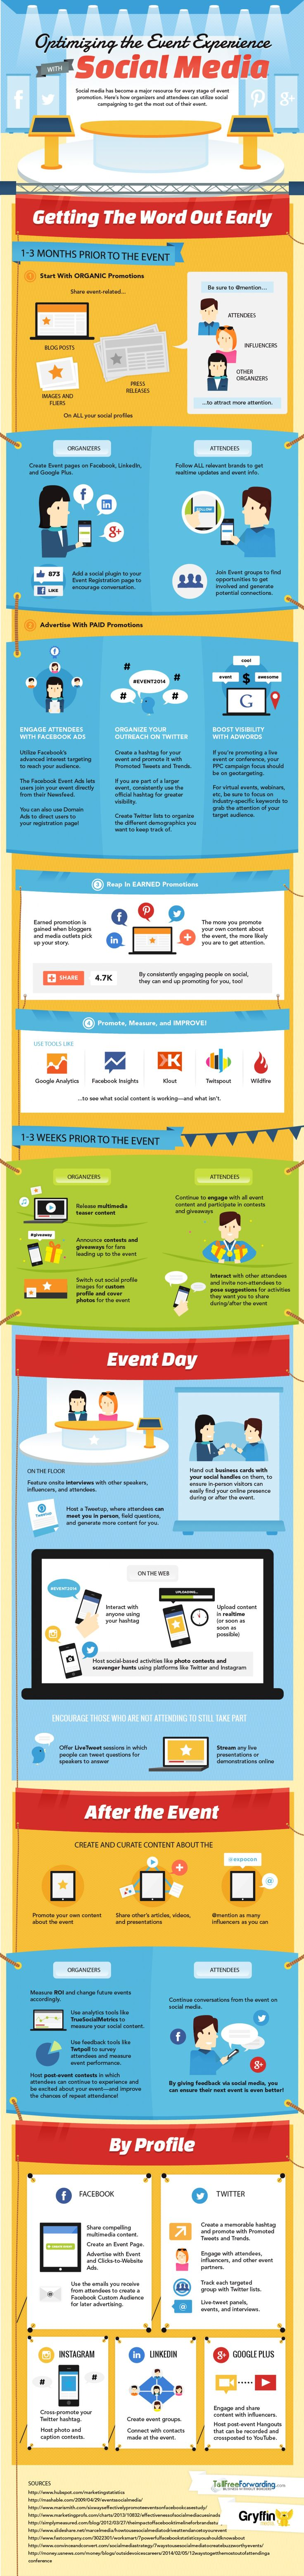 Optimizing the Event Experience with Social Media